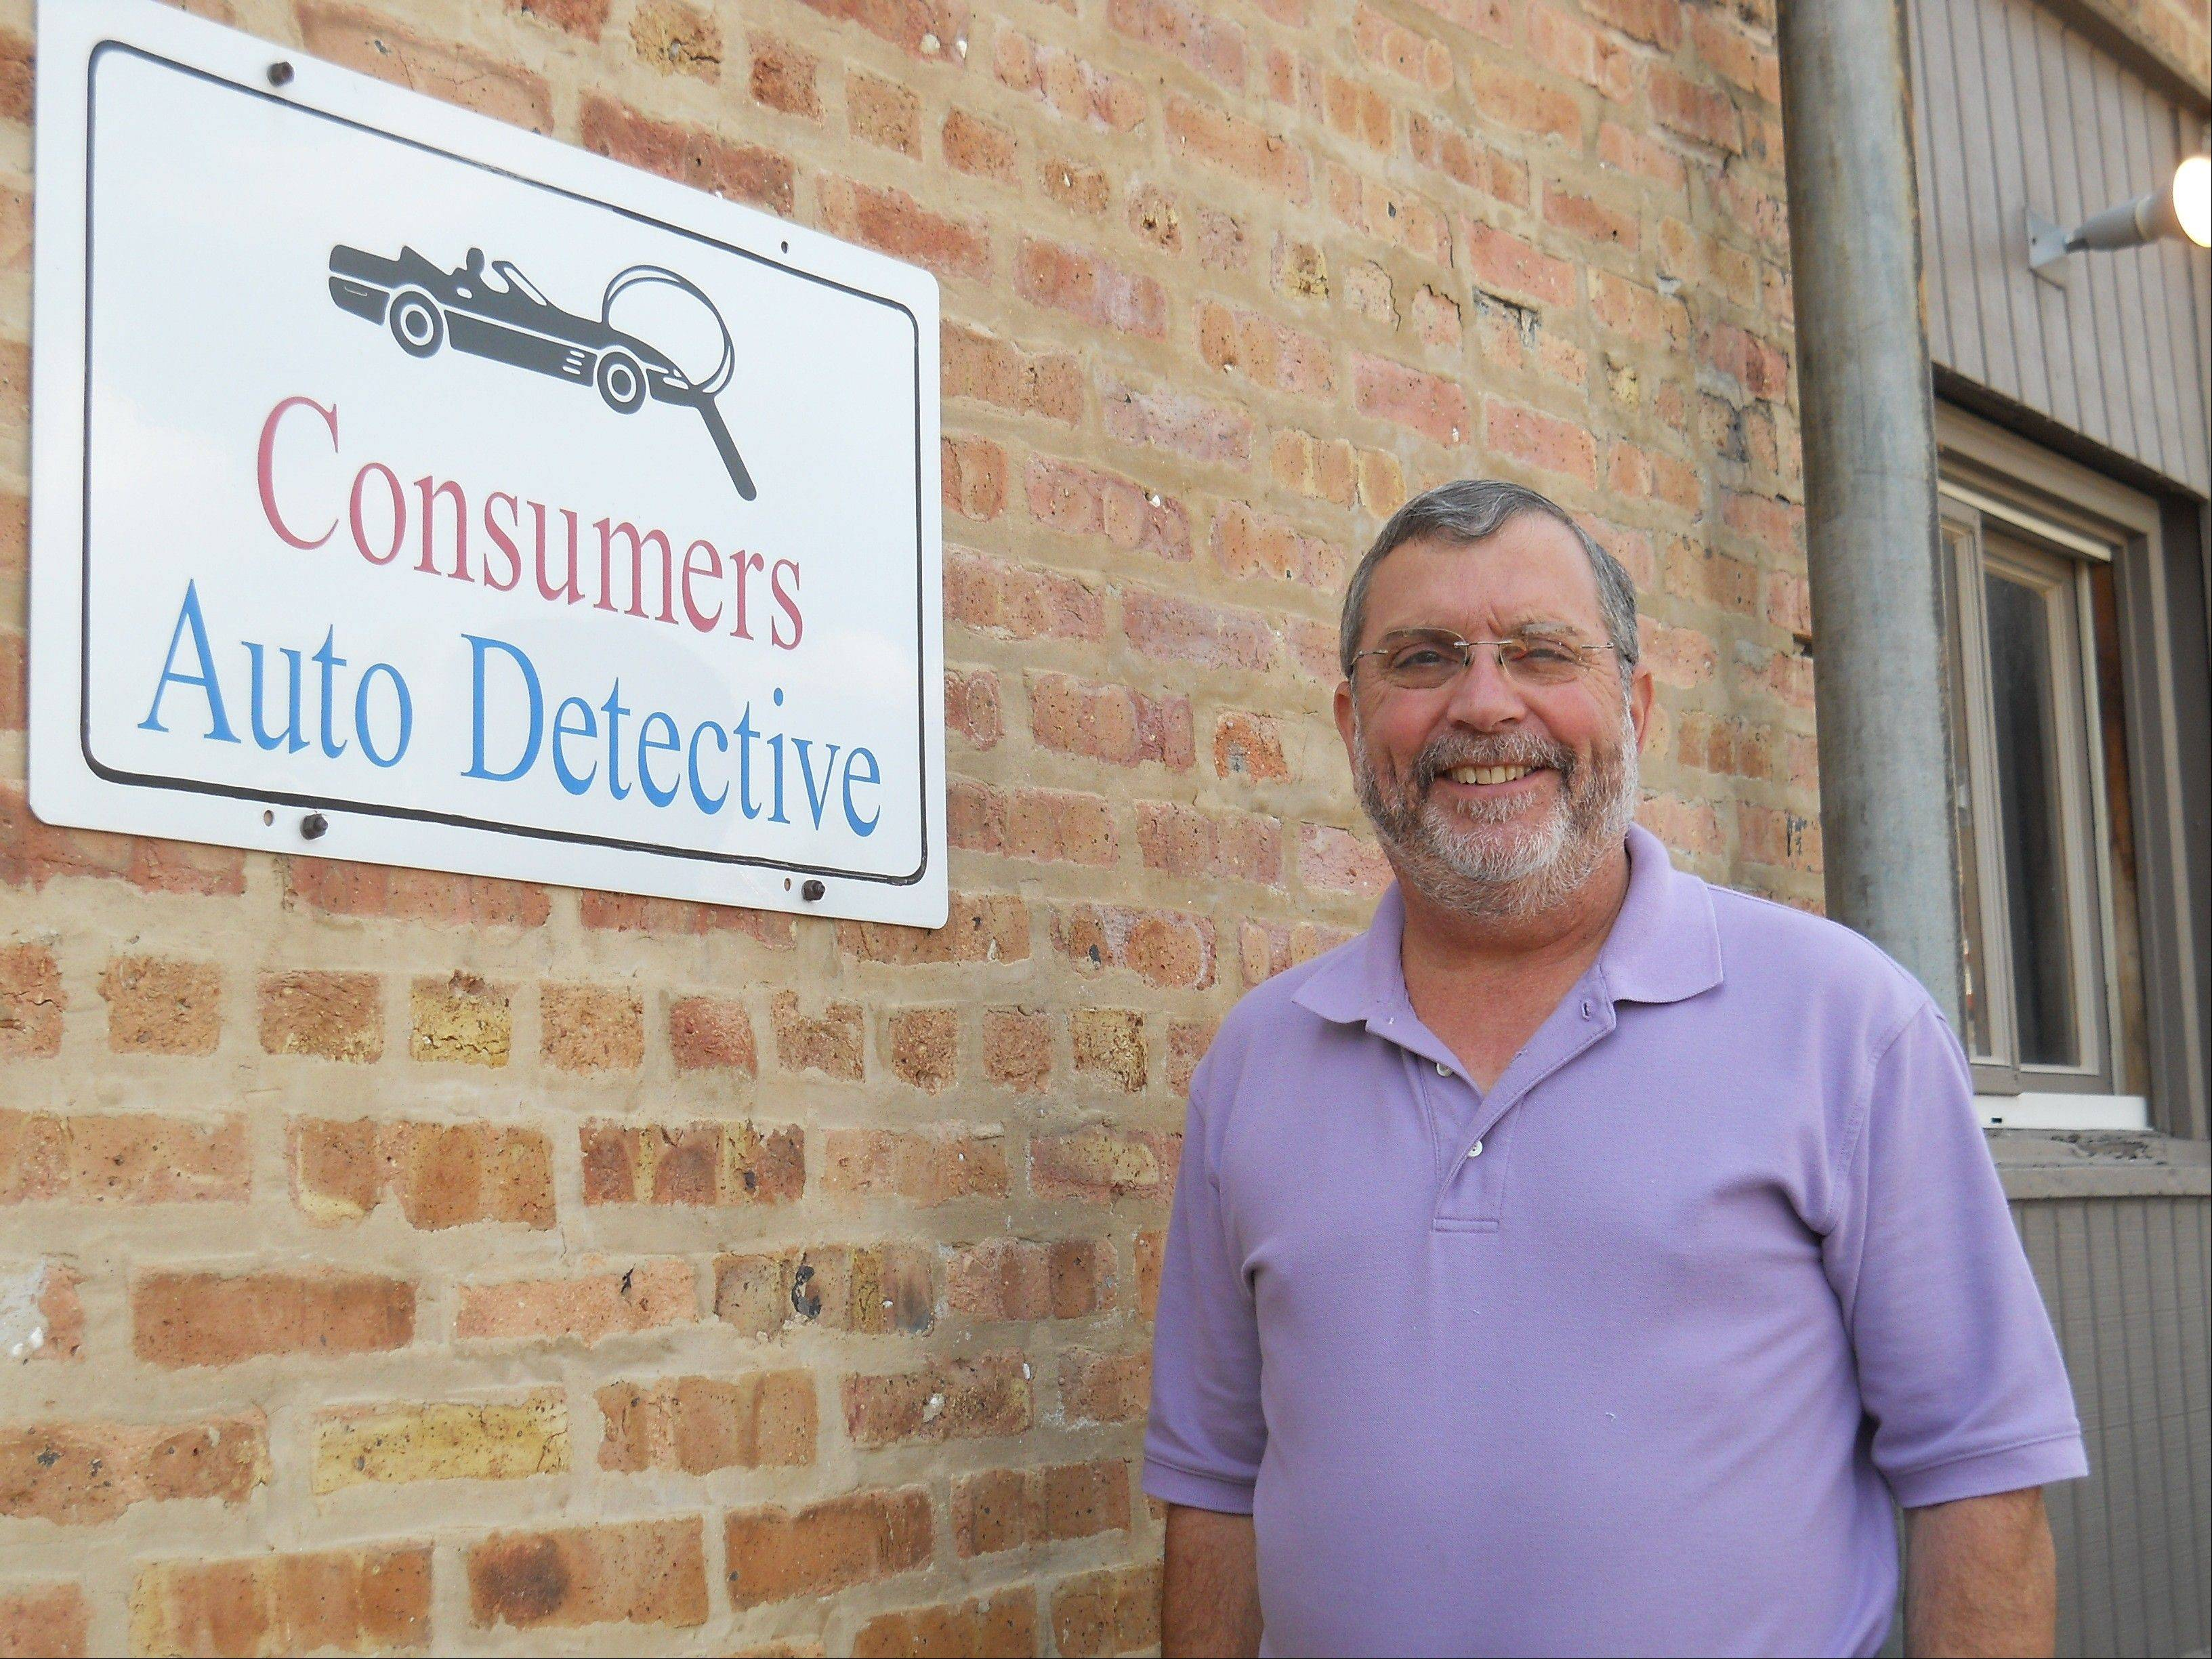 Kenneth J. Klein, owner of Consumers' Auto Detective in Elgin.